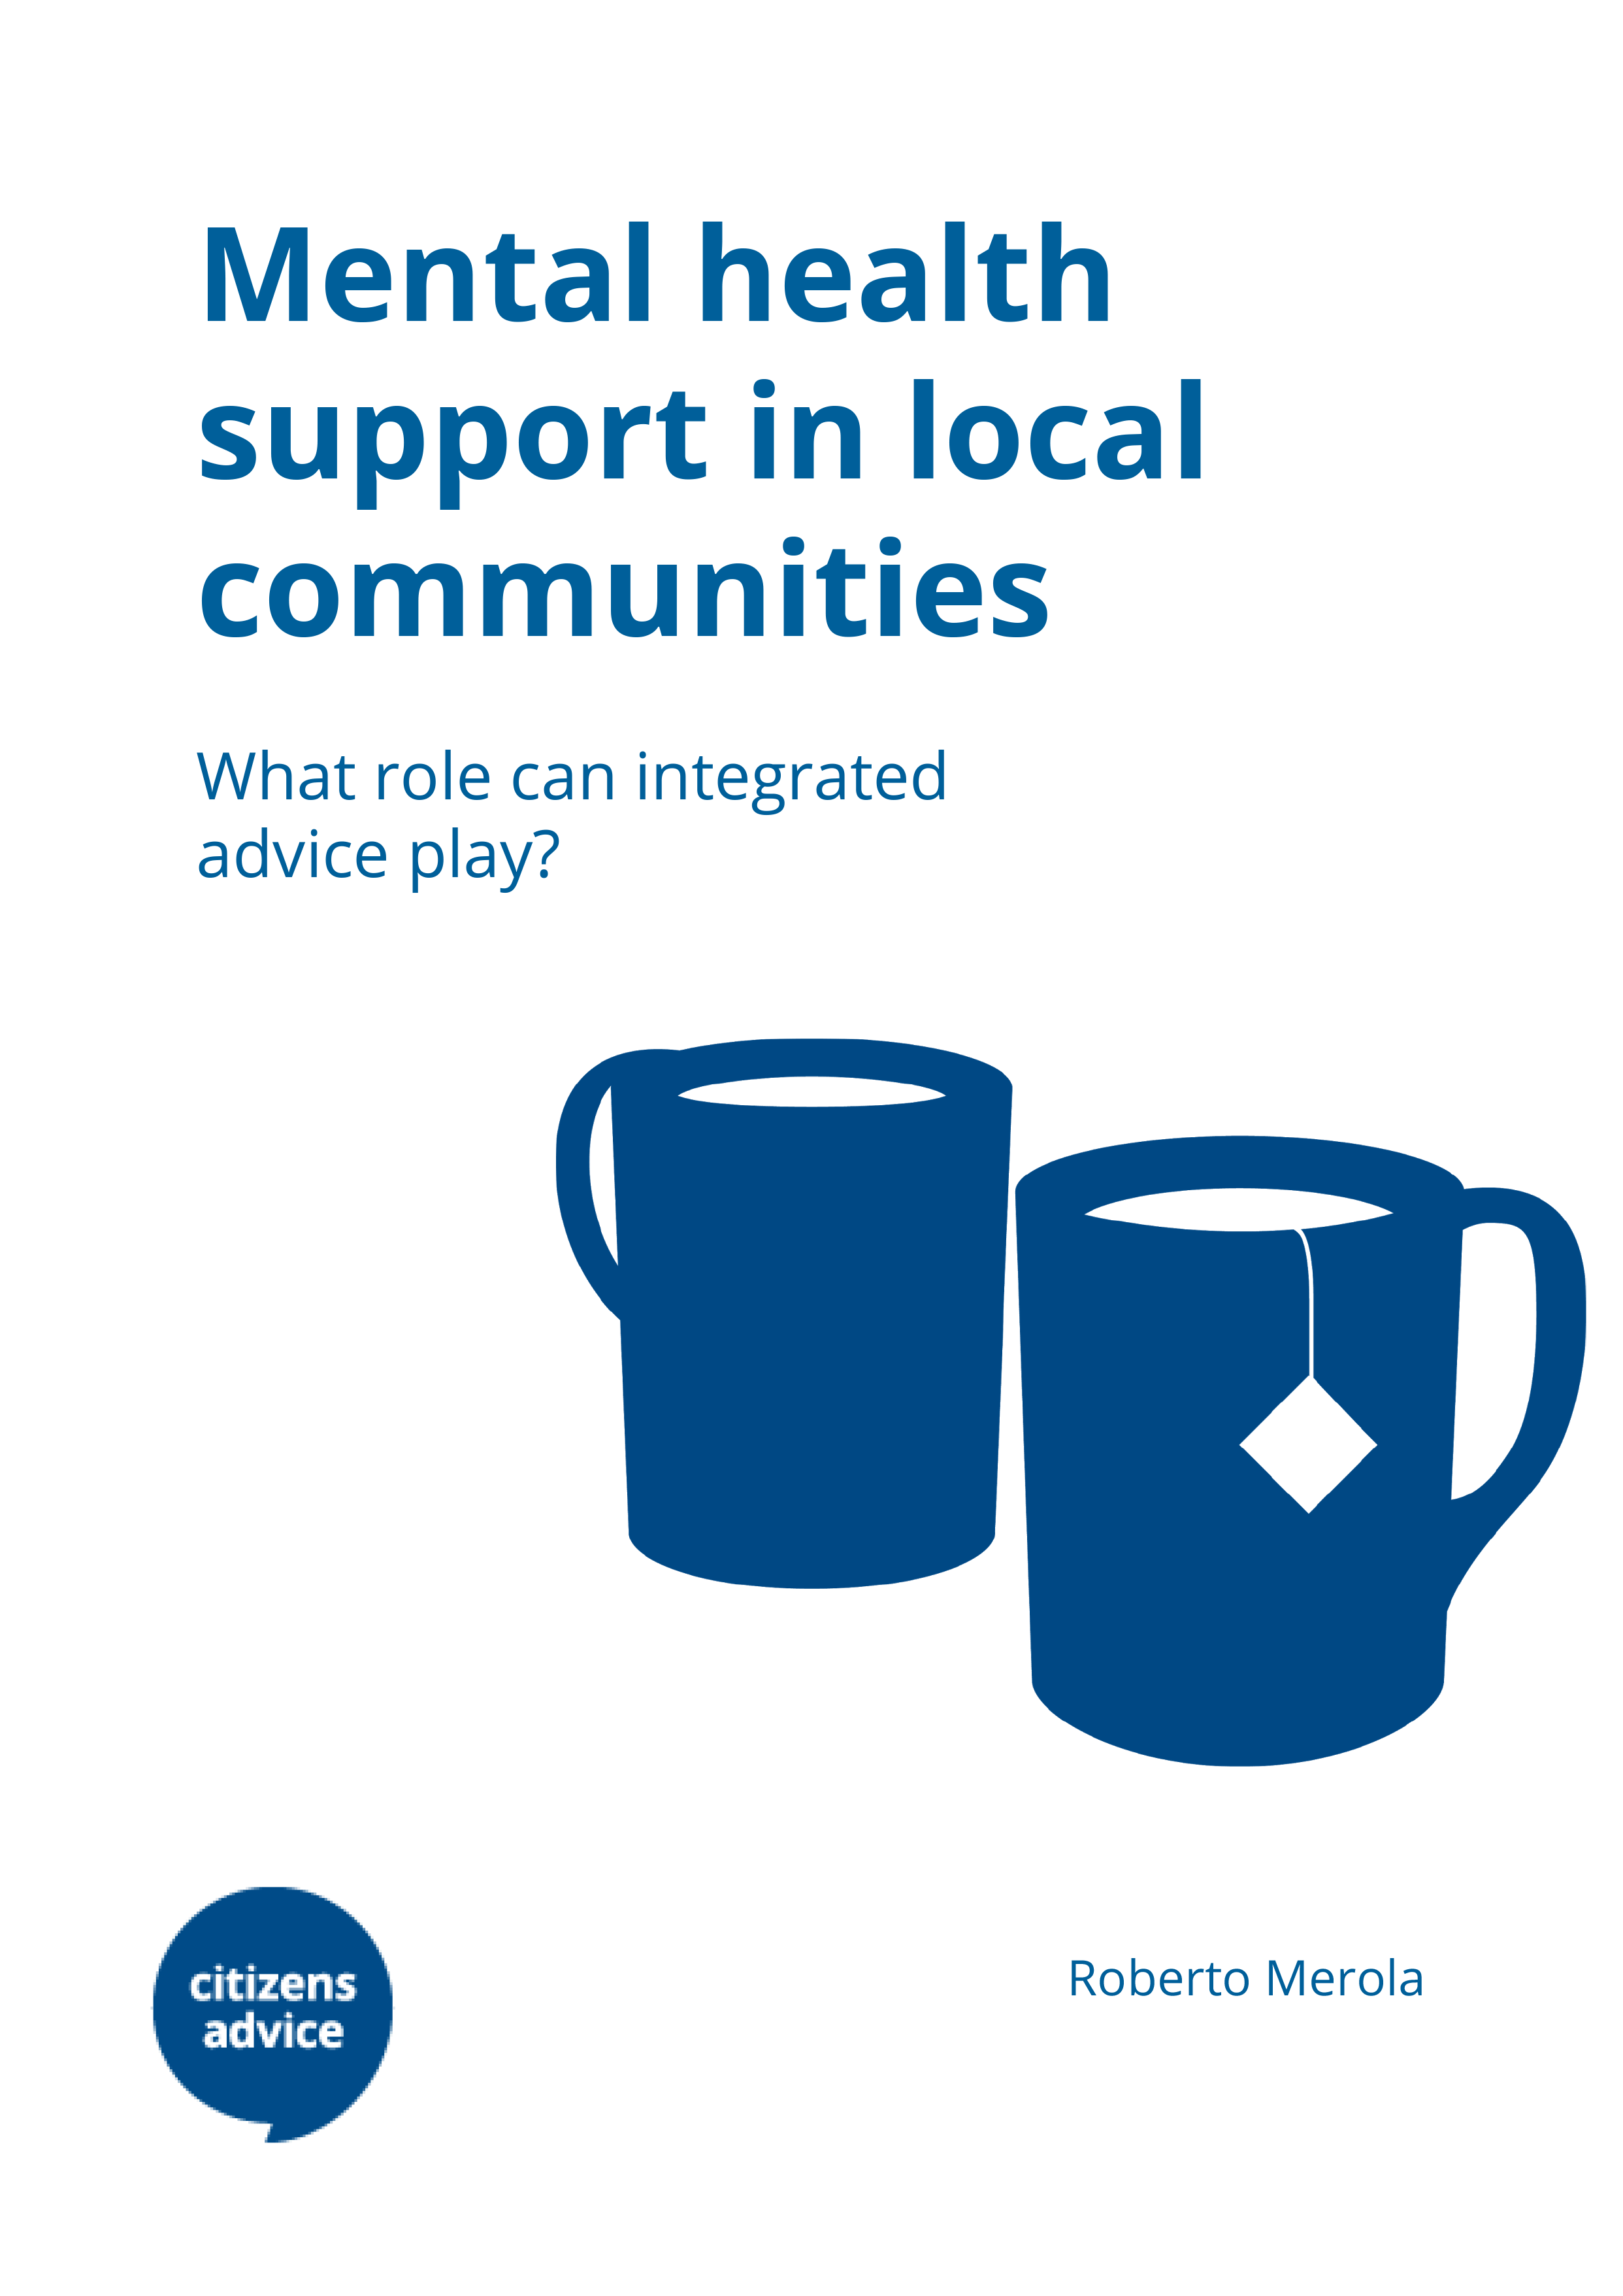 Mental health support in local communities